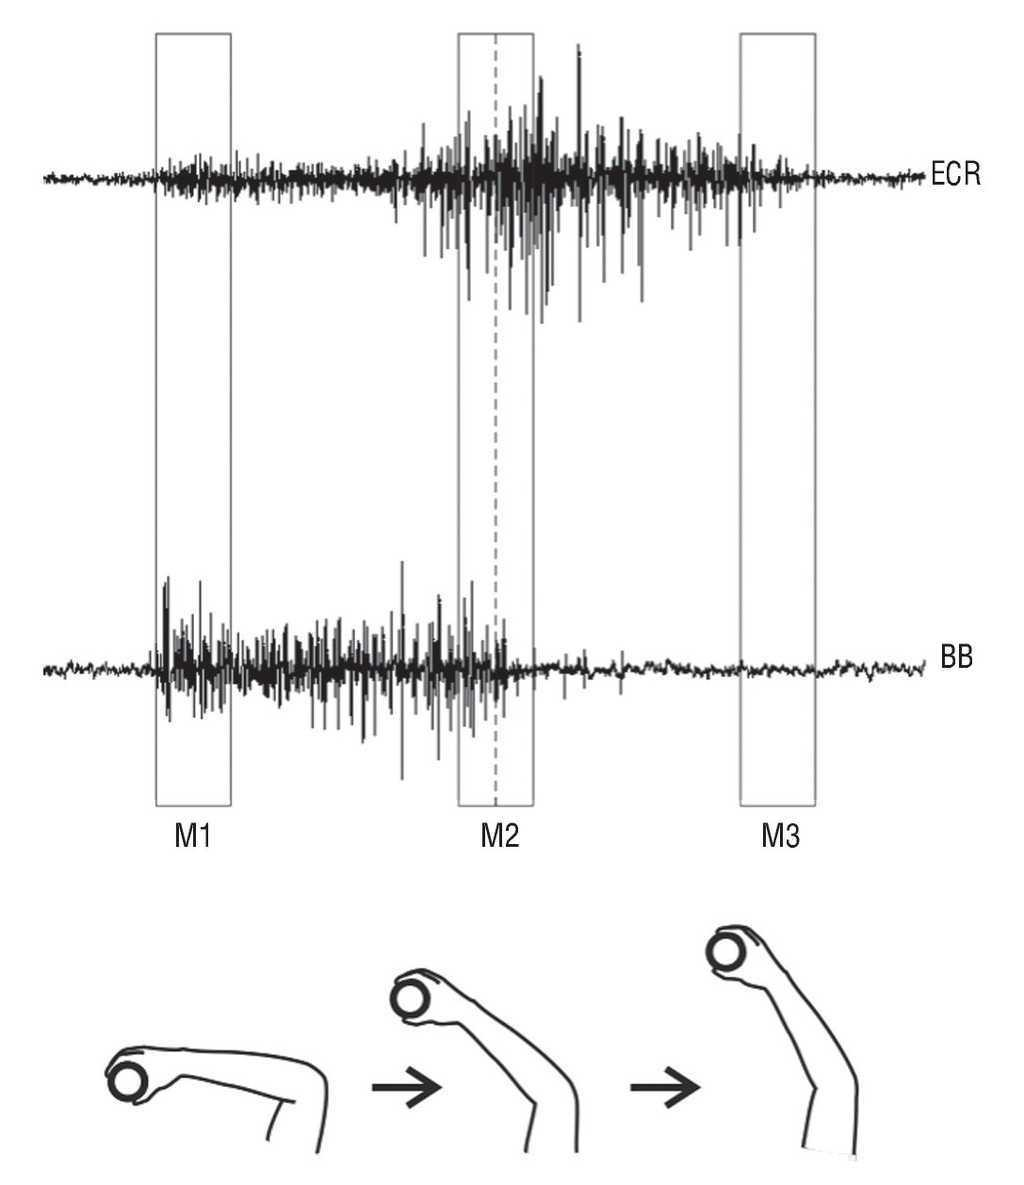 Temporal Changes In The Myoelectric Activity Between Dominant Figure 2 Block Diagram Of Proposed System For Emg Signal Fig This Schematic View Illustrates How Surface Electromyographic Each Time M1 M2 And M3 Was Identified During Task